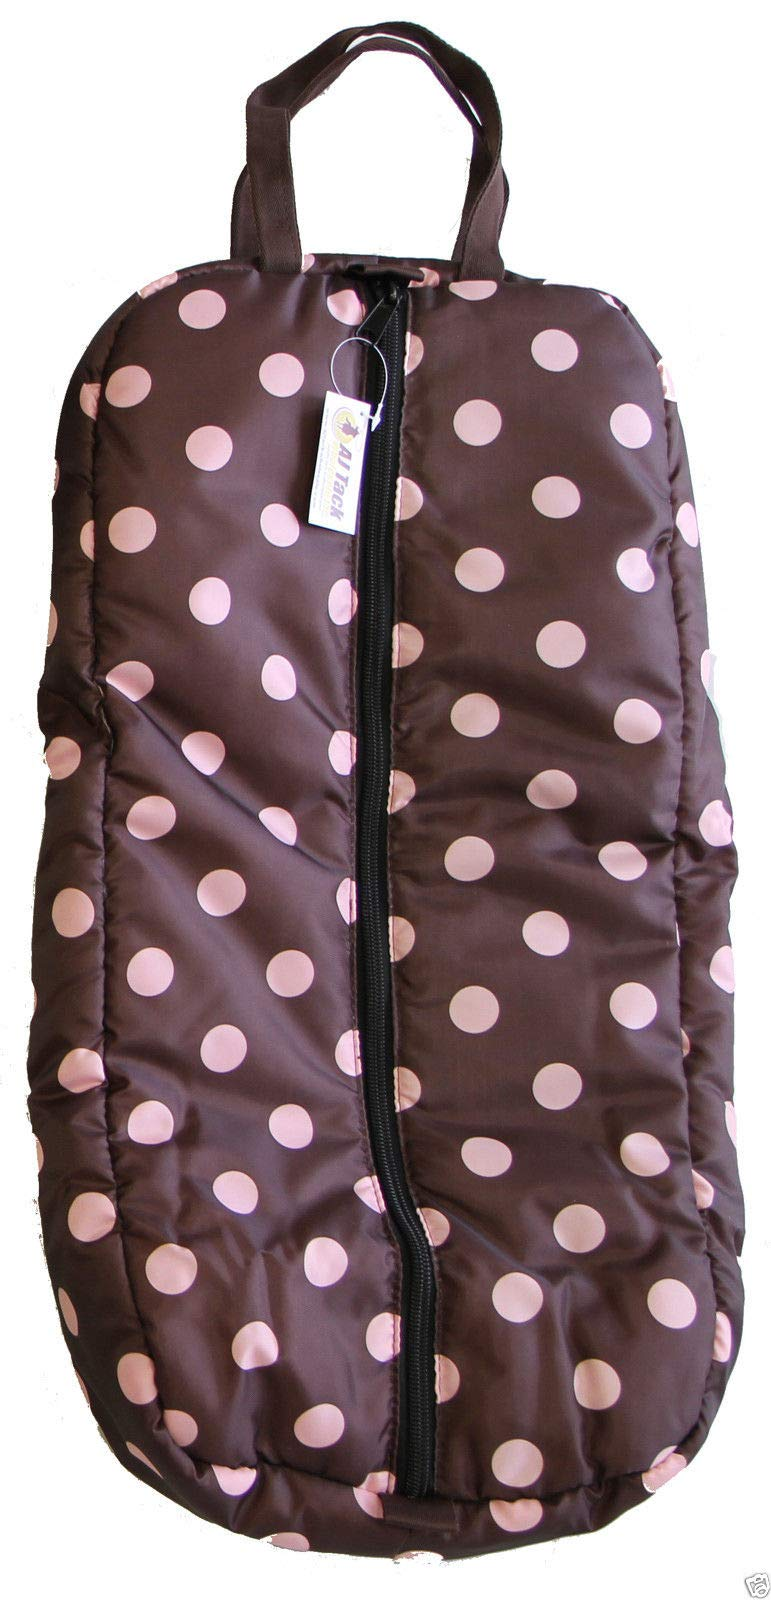 Deluxe Bridle Halter Padded Tote Bag Storage Case with Three Inner Loops Pink Polka Dots by AJ Tack Wholesale